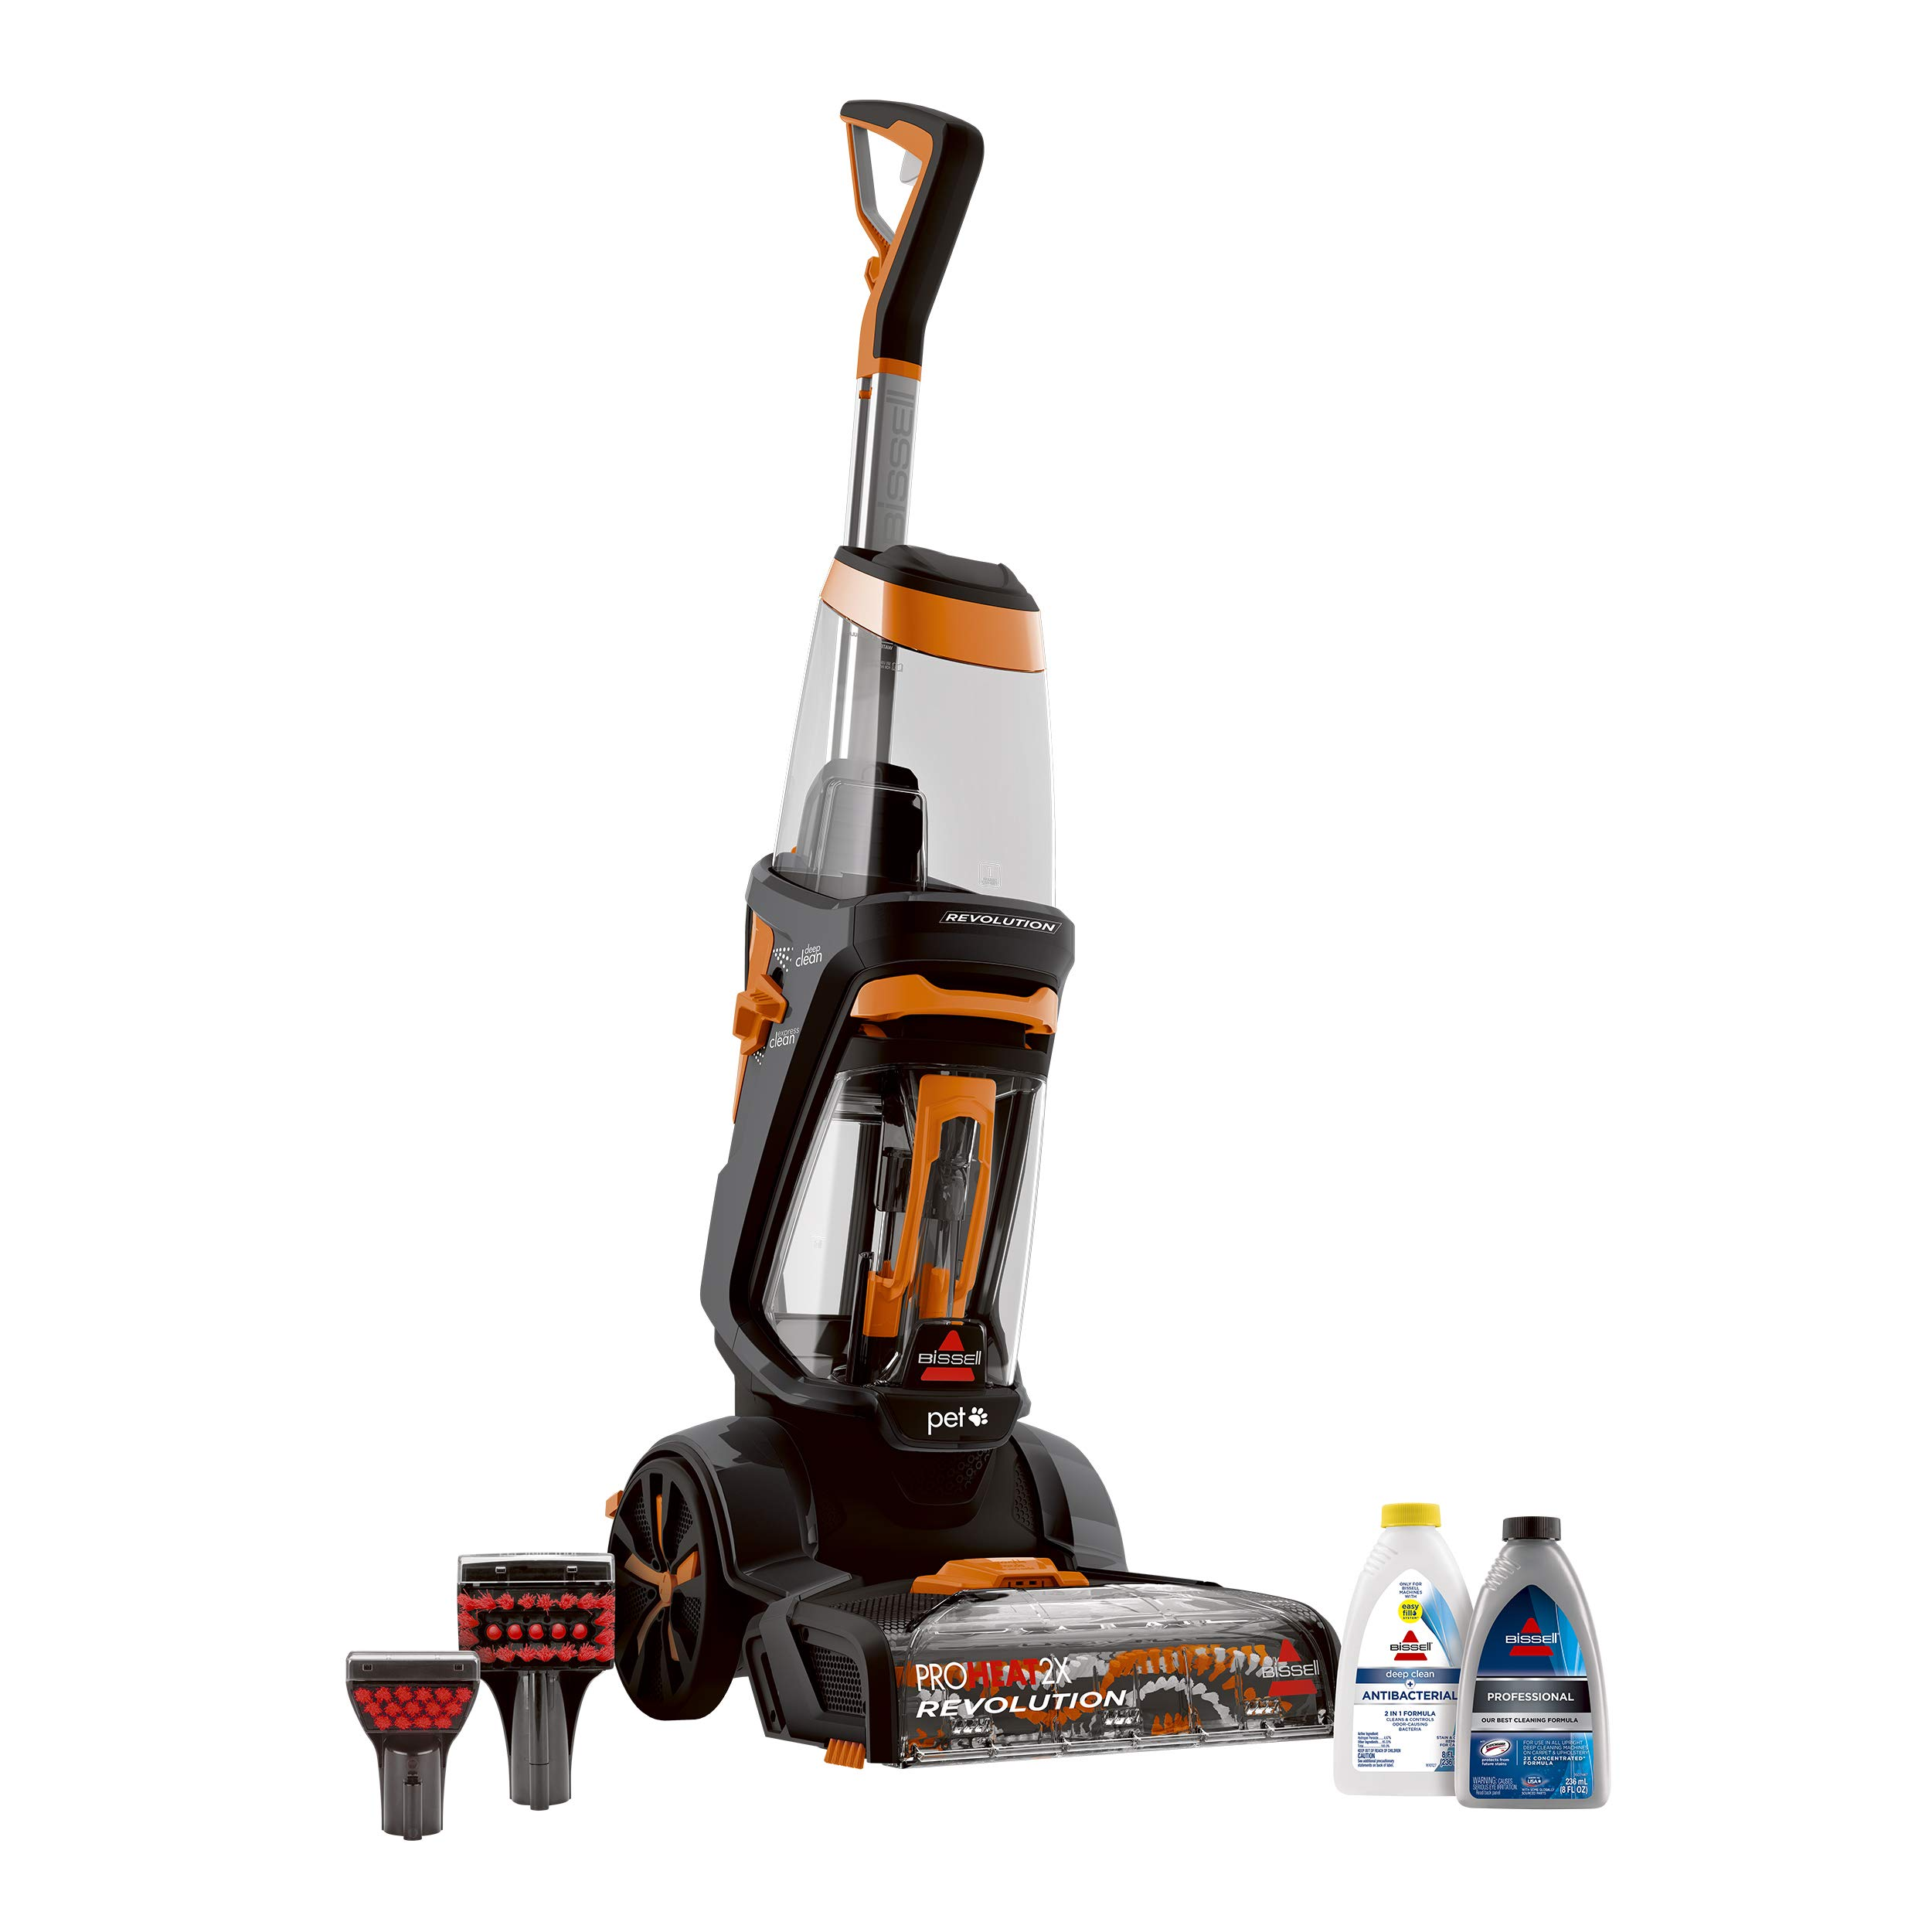 BISSELL ProHeat 2X Revolution Pet Full Size Upright Carpet Cleaner, 1548F, Orange by Bissell